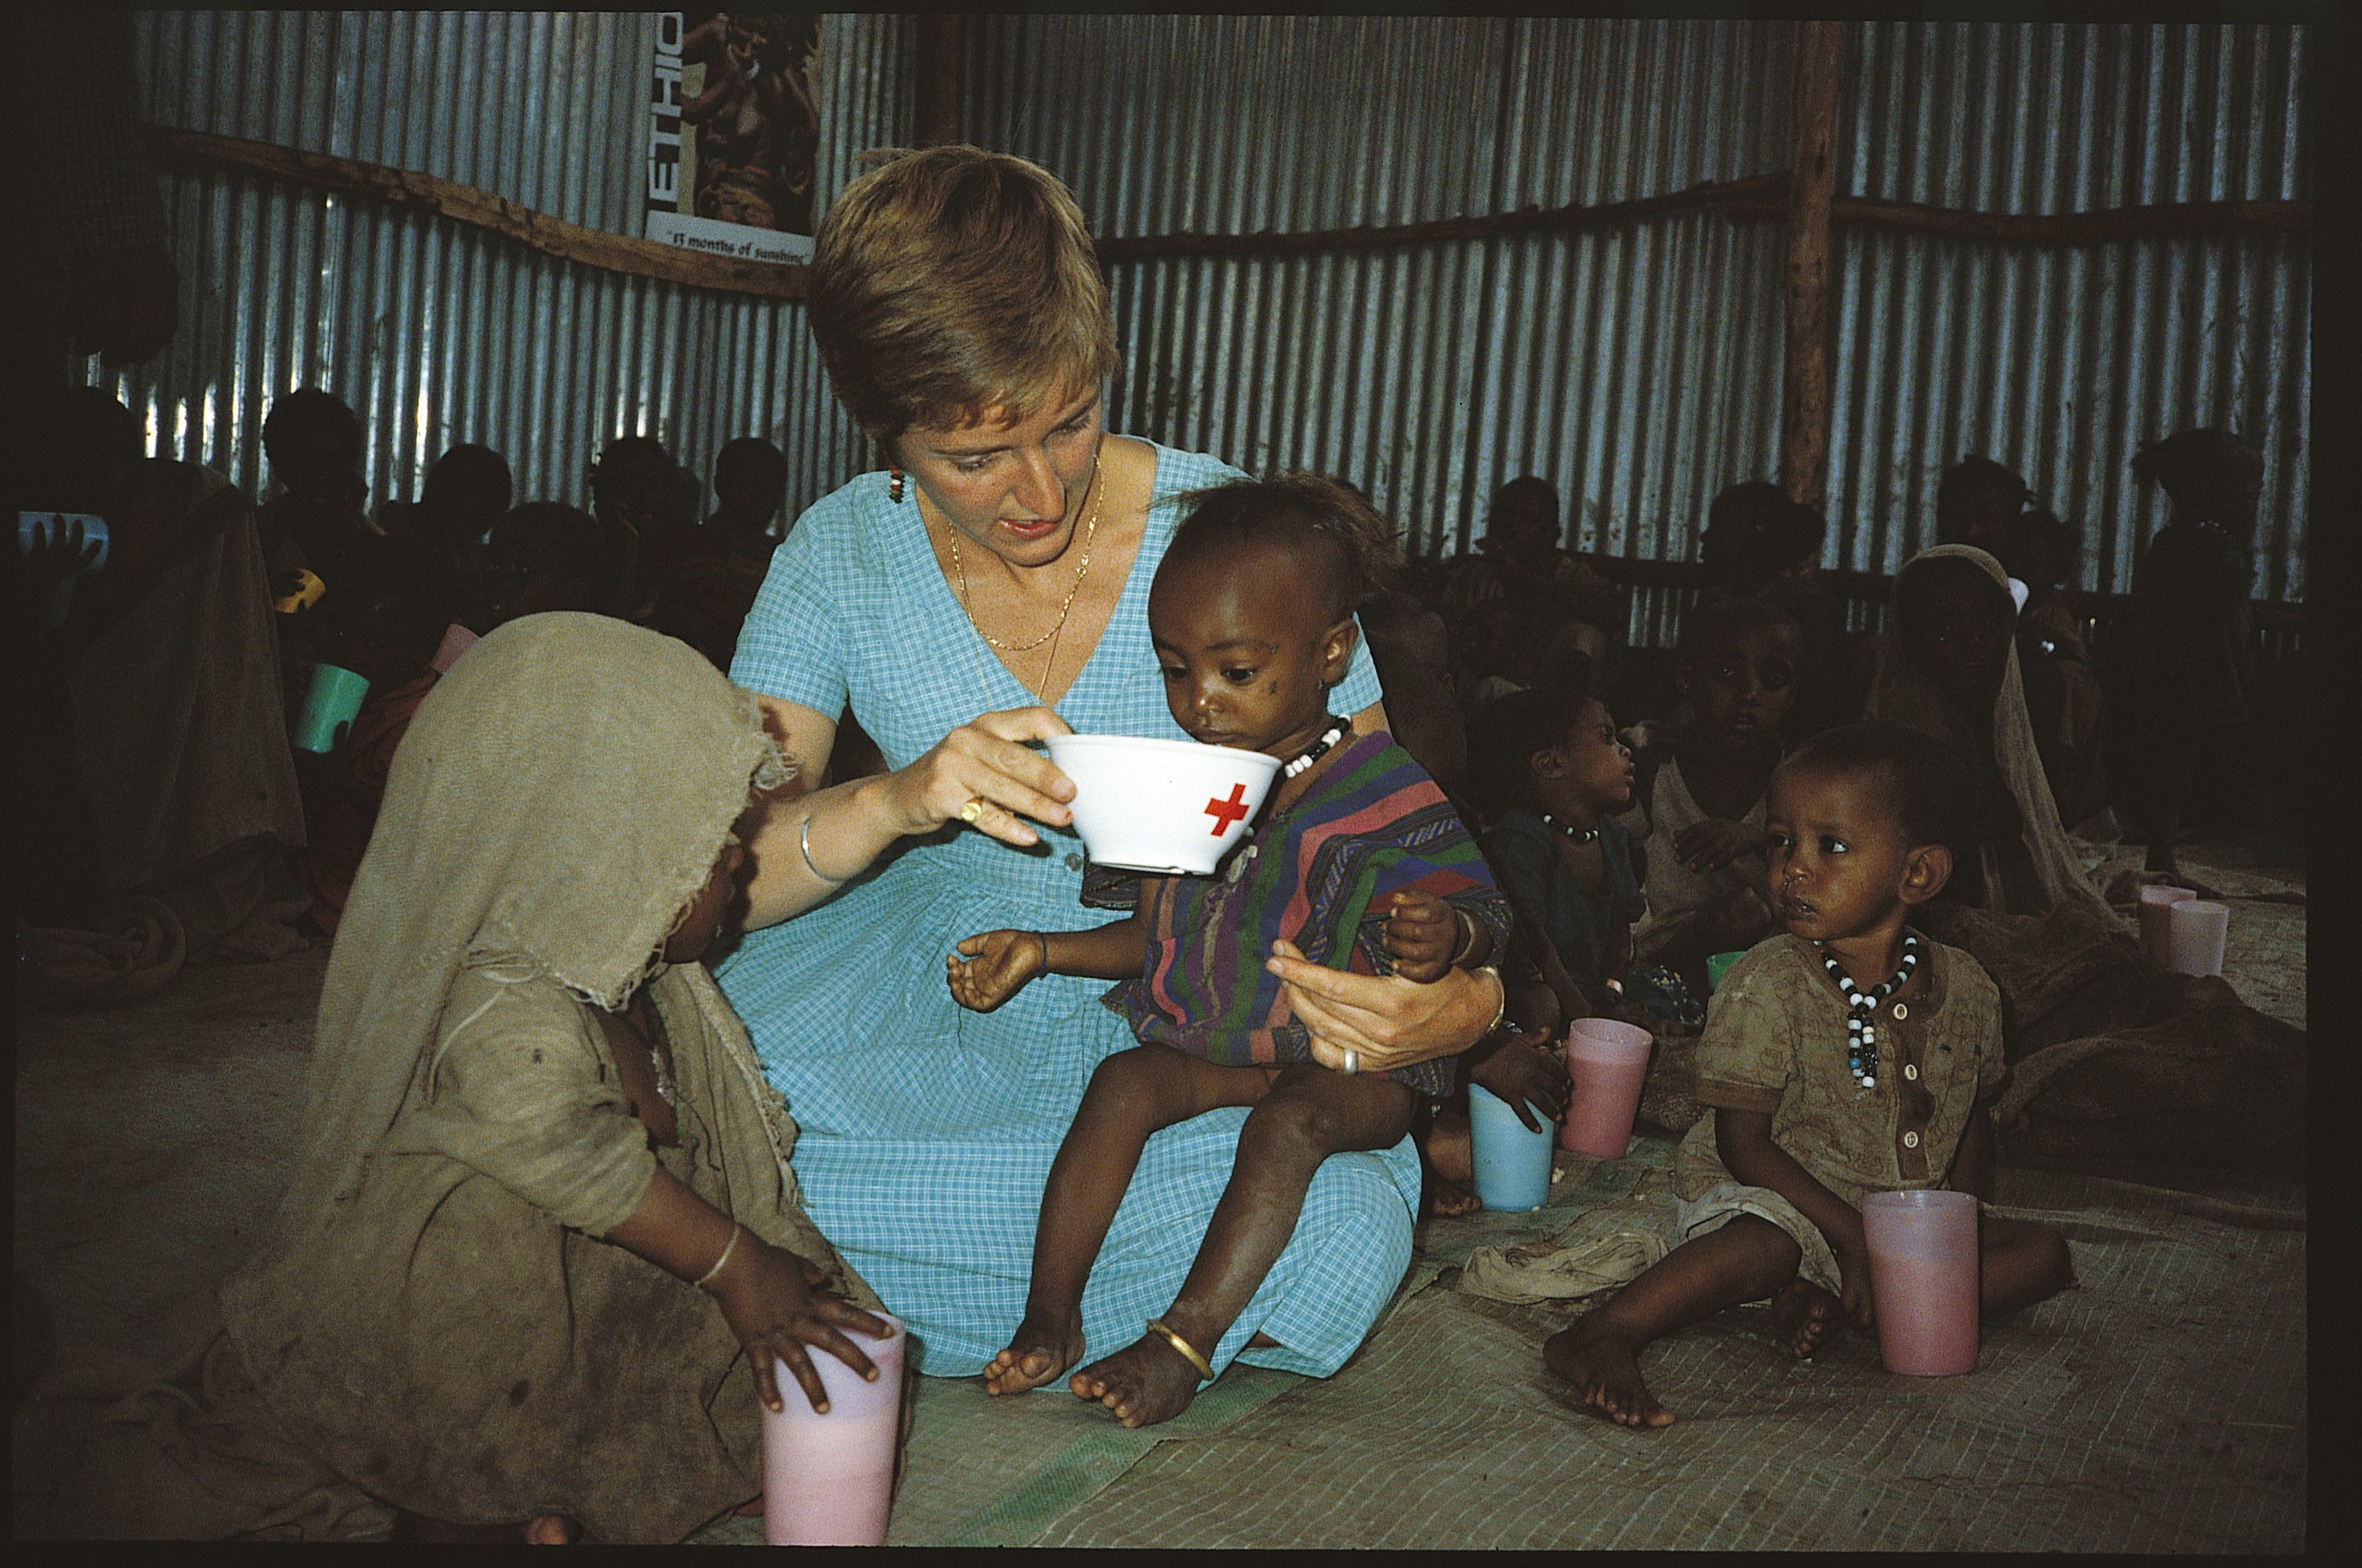 Caption: Claire Bertschinger feeding Ethiopian child. Credit: Claire Bertschinger